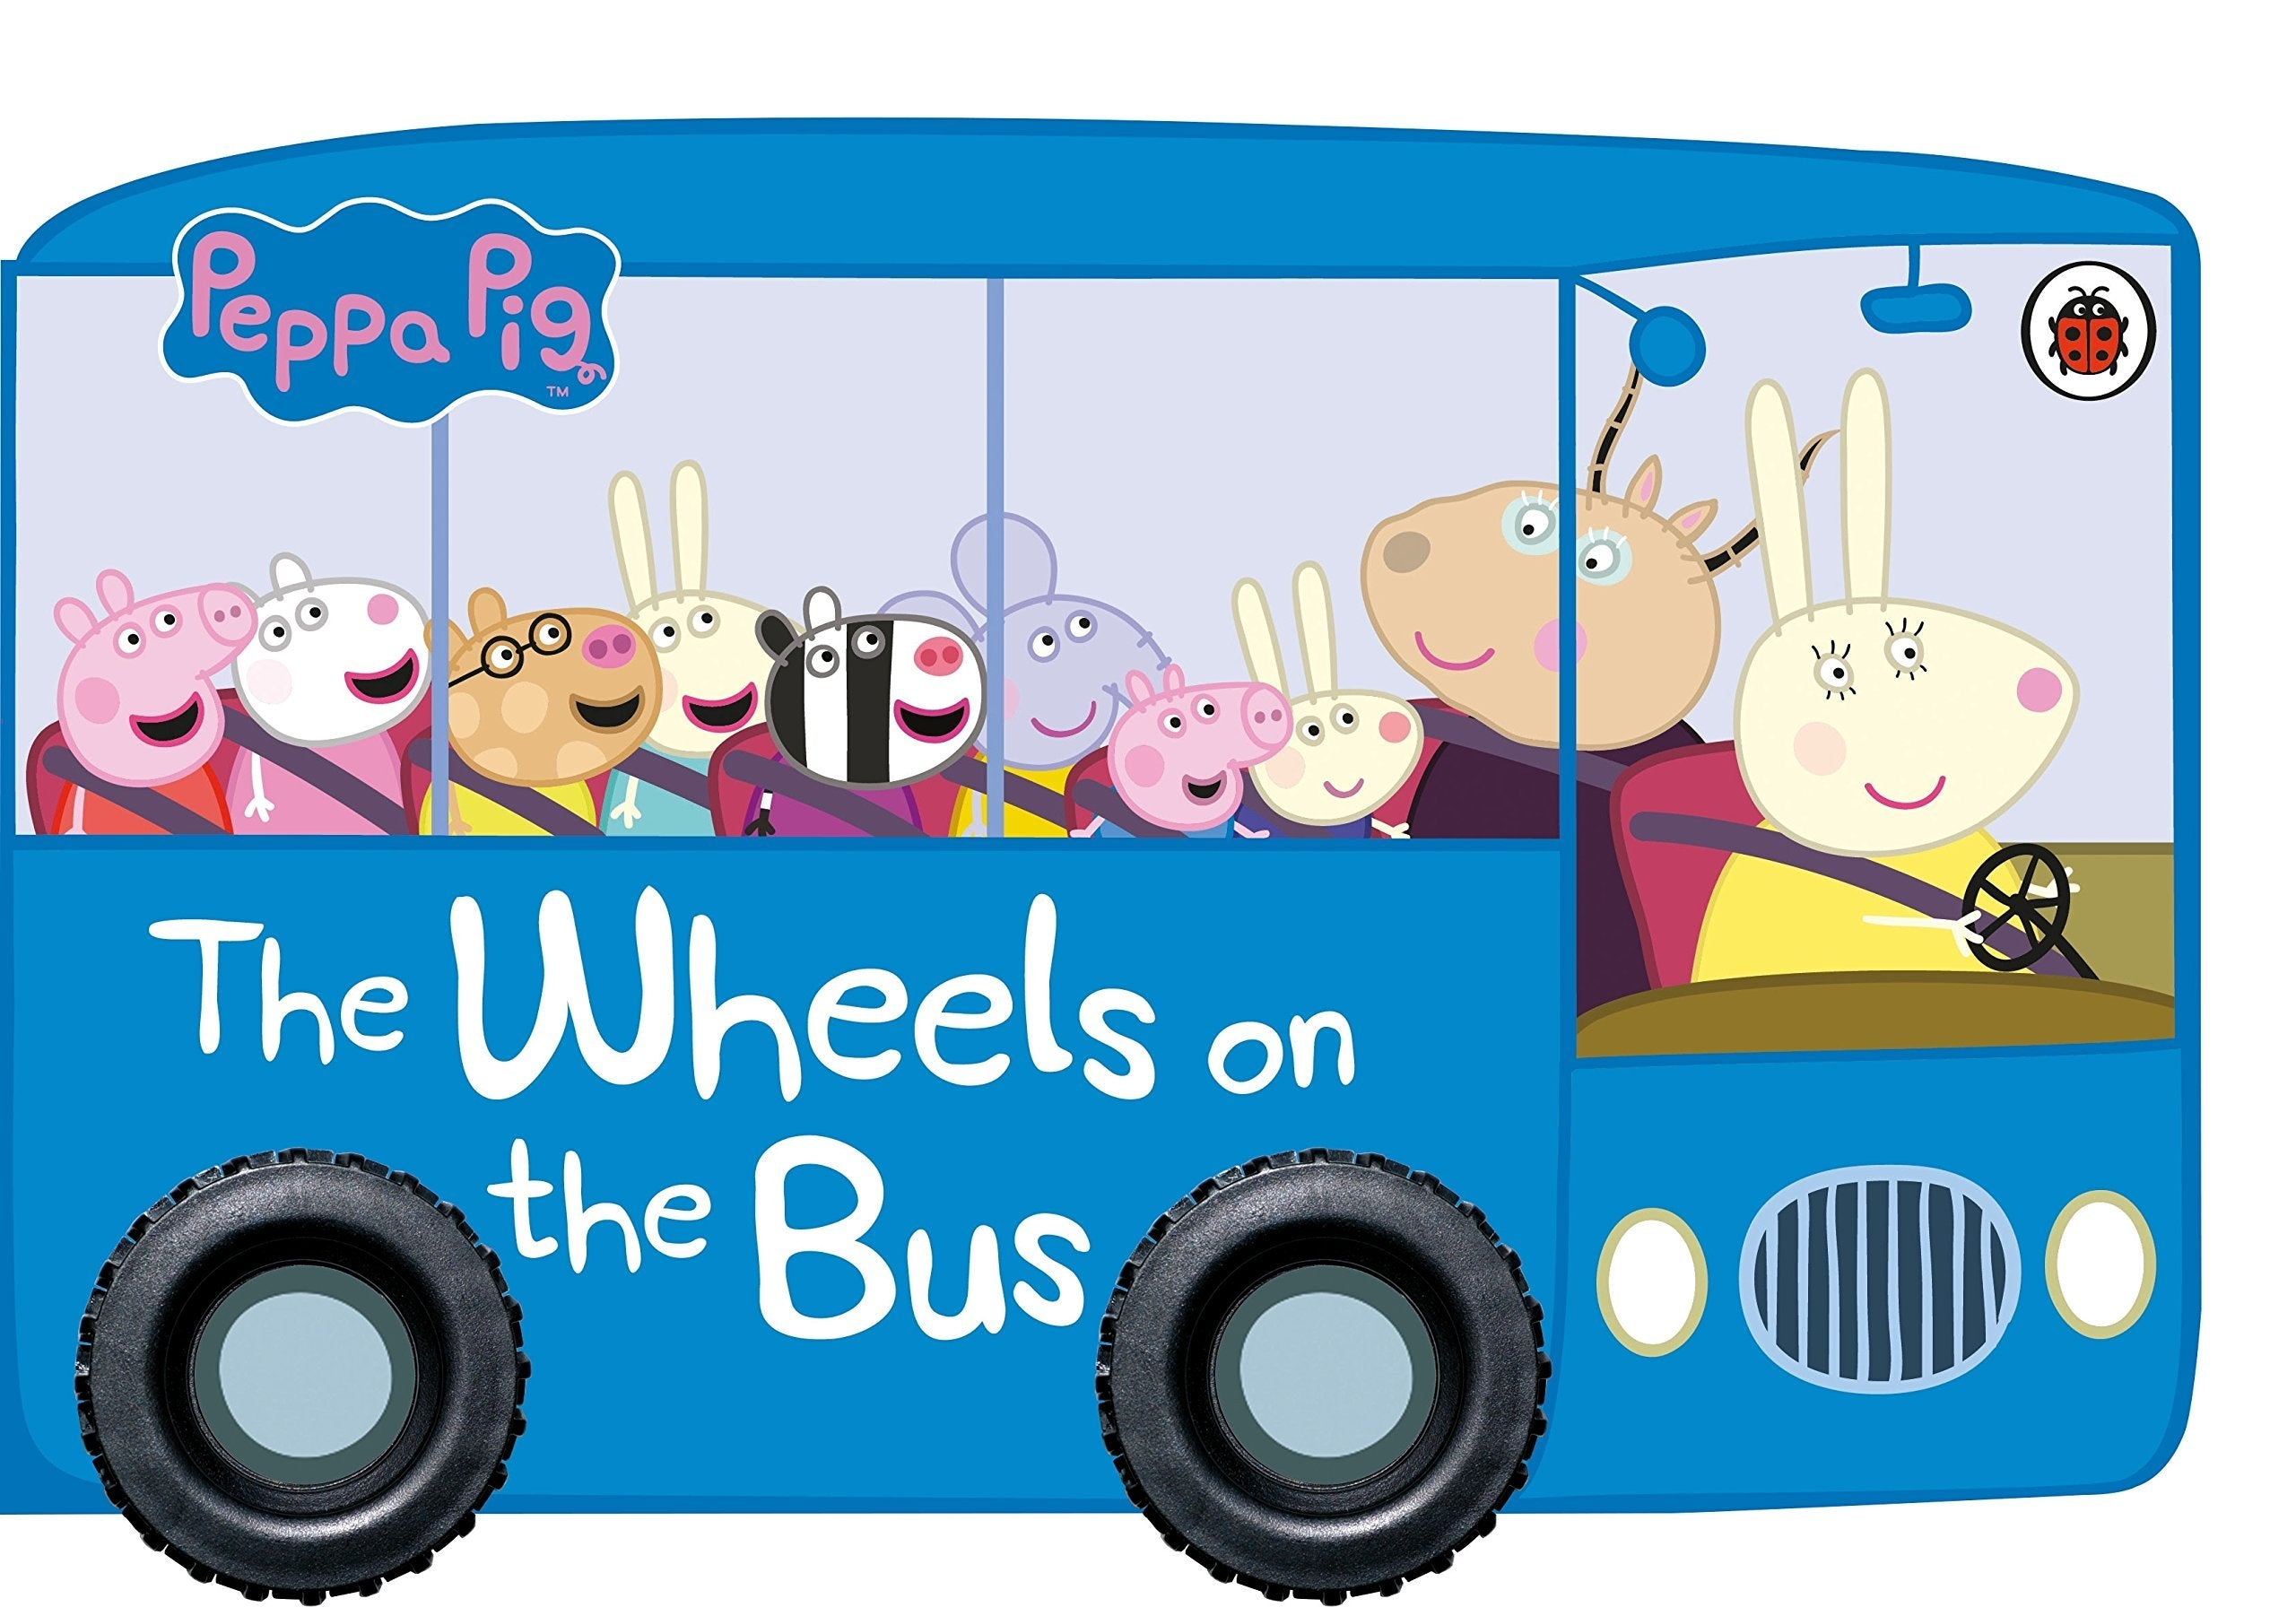 Peppa Pig: The Wheels on the Bus